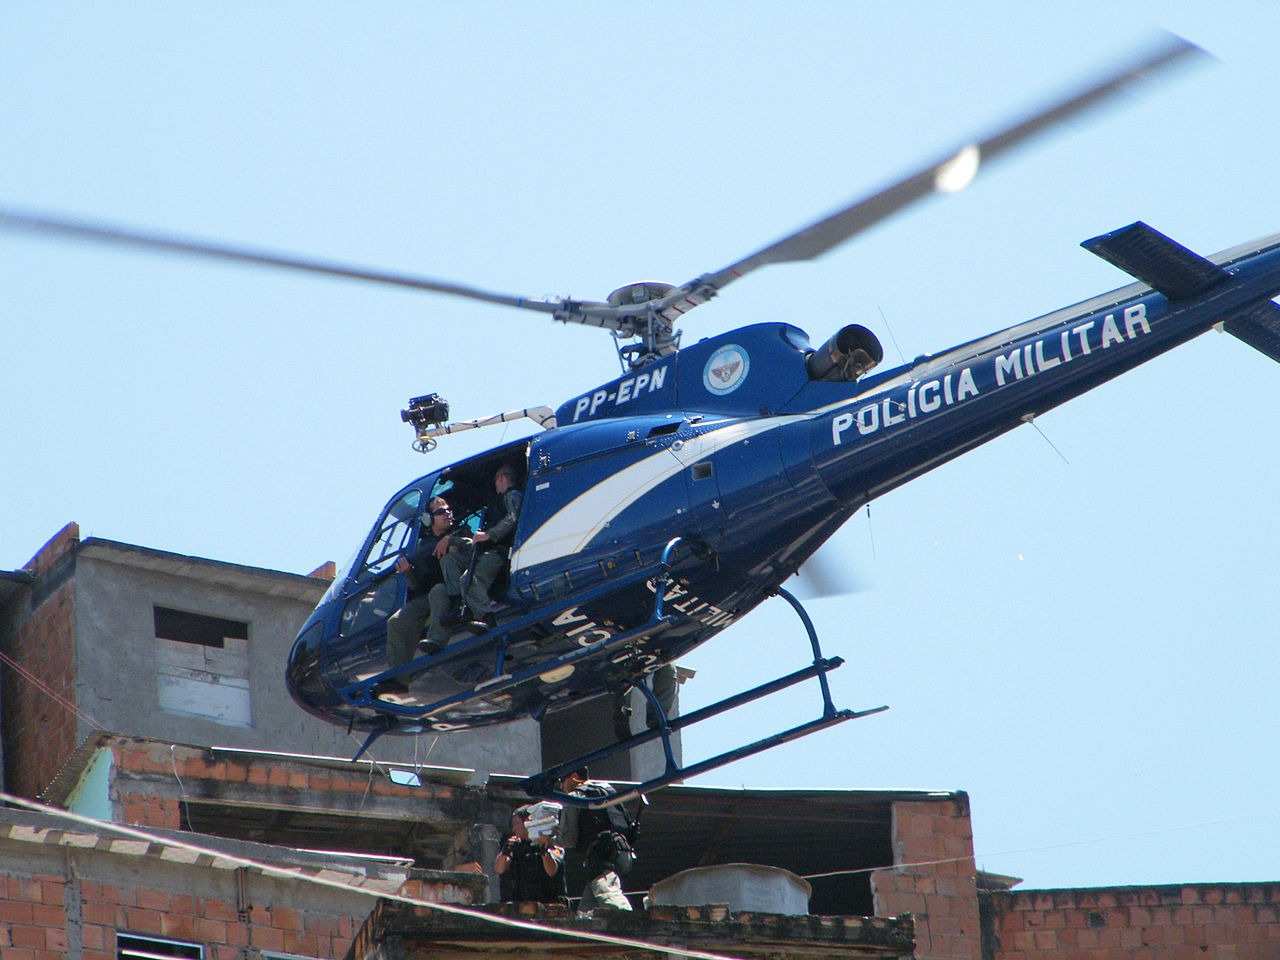 Rio de Janeiro Military Police helicopter hovers over the Alemão favela complex in an operation carried out in 2010 (Vladimir Platonov/ABr)